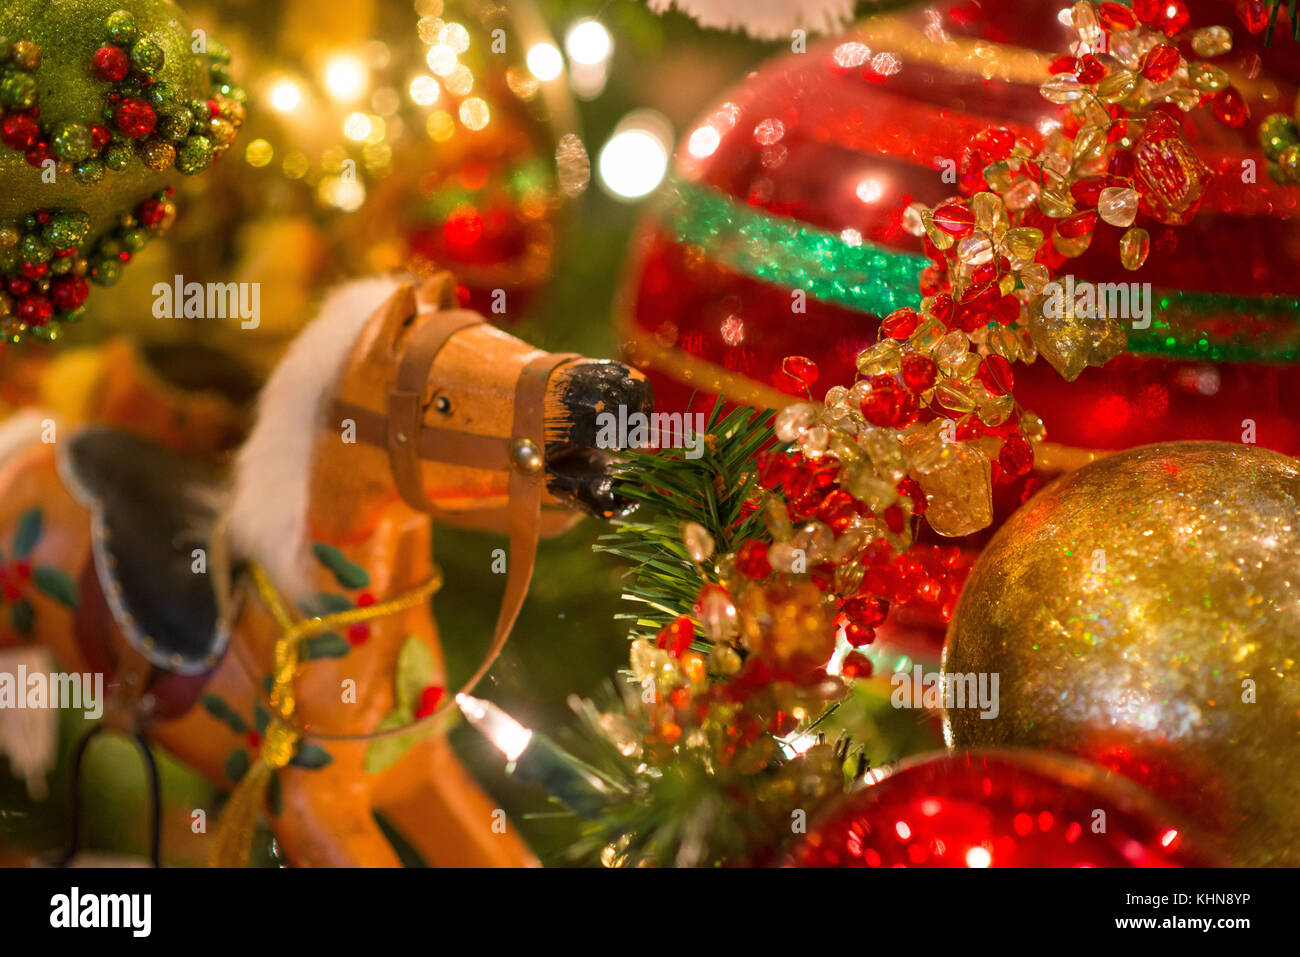 Halo Christmas Ornament.Close Up Of Rocking Horse Toy And Glittery Christmas